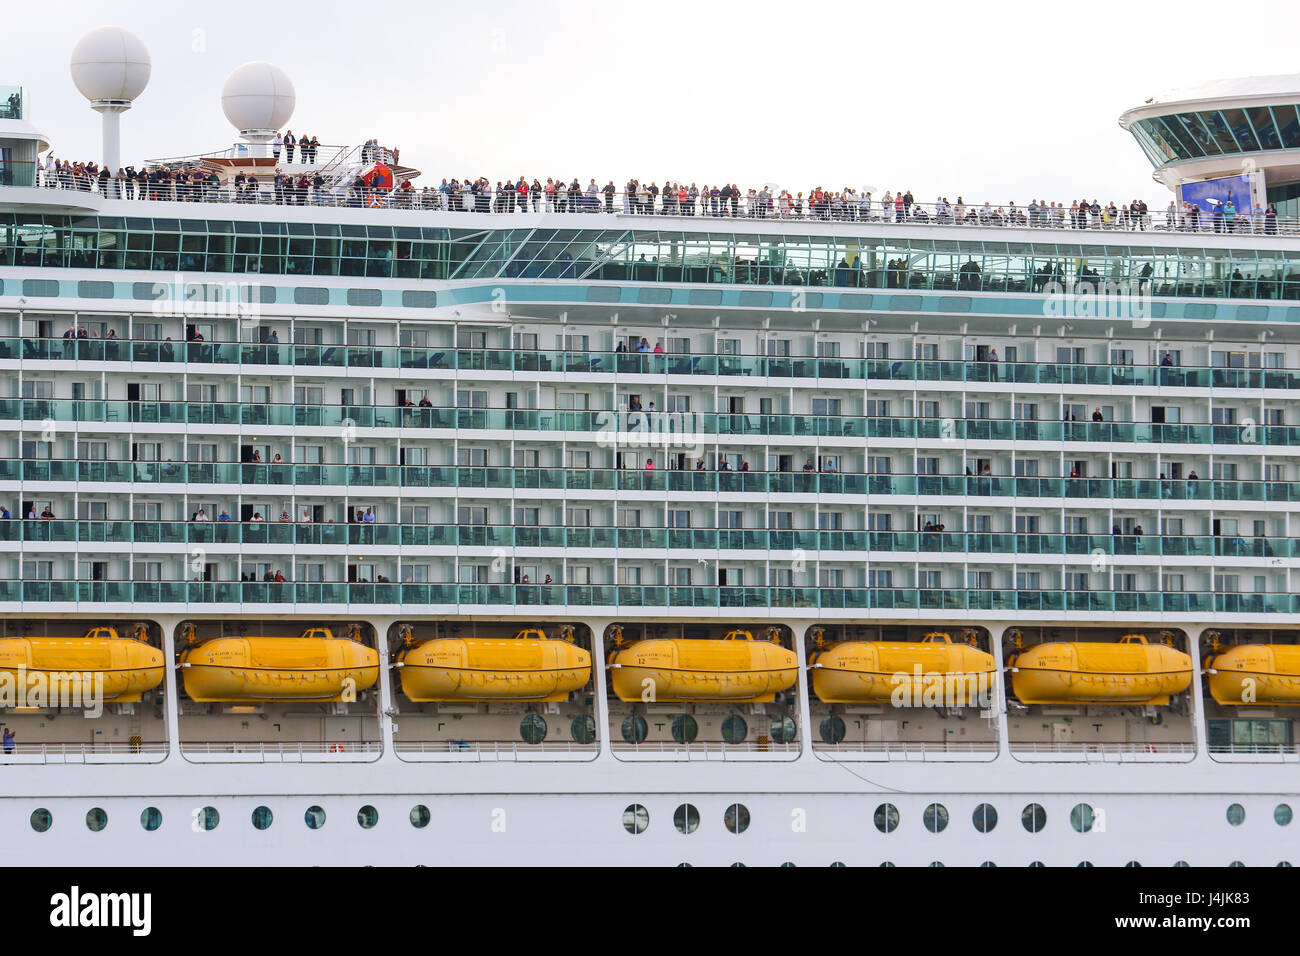 Passengers stand atop Royal Caribbean's MS Navigator of the Seas as it departs Southampton - Stock Image